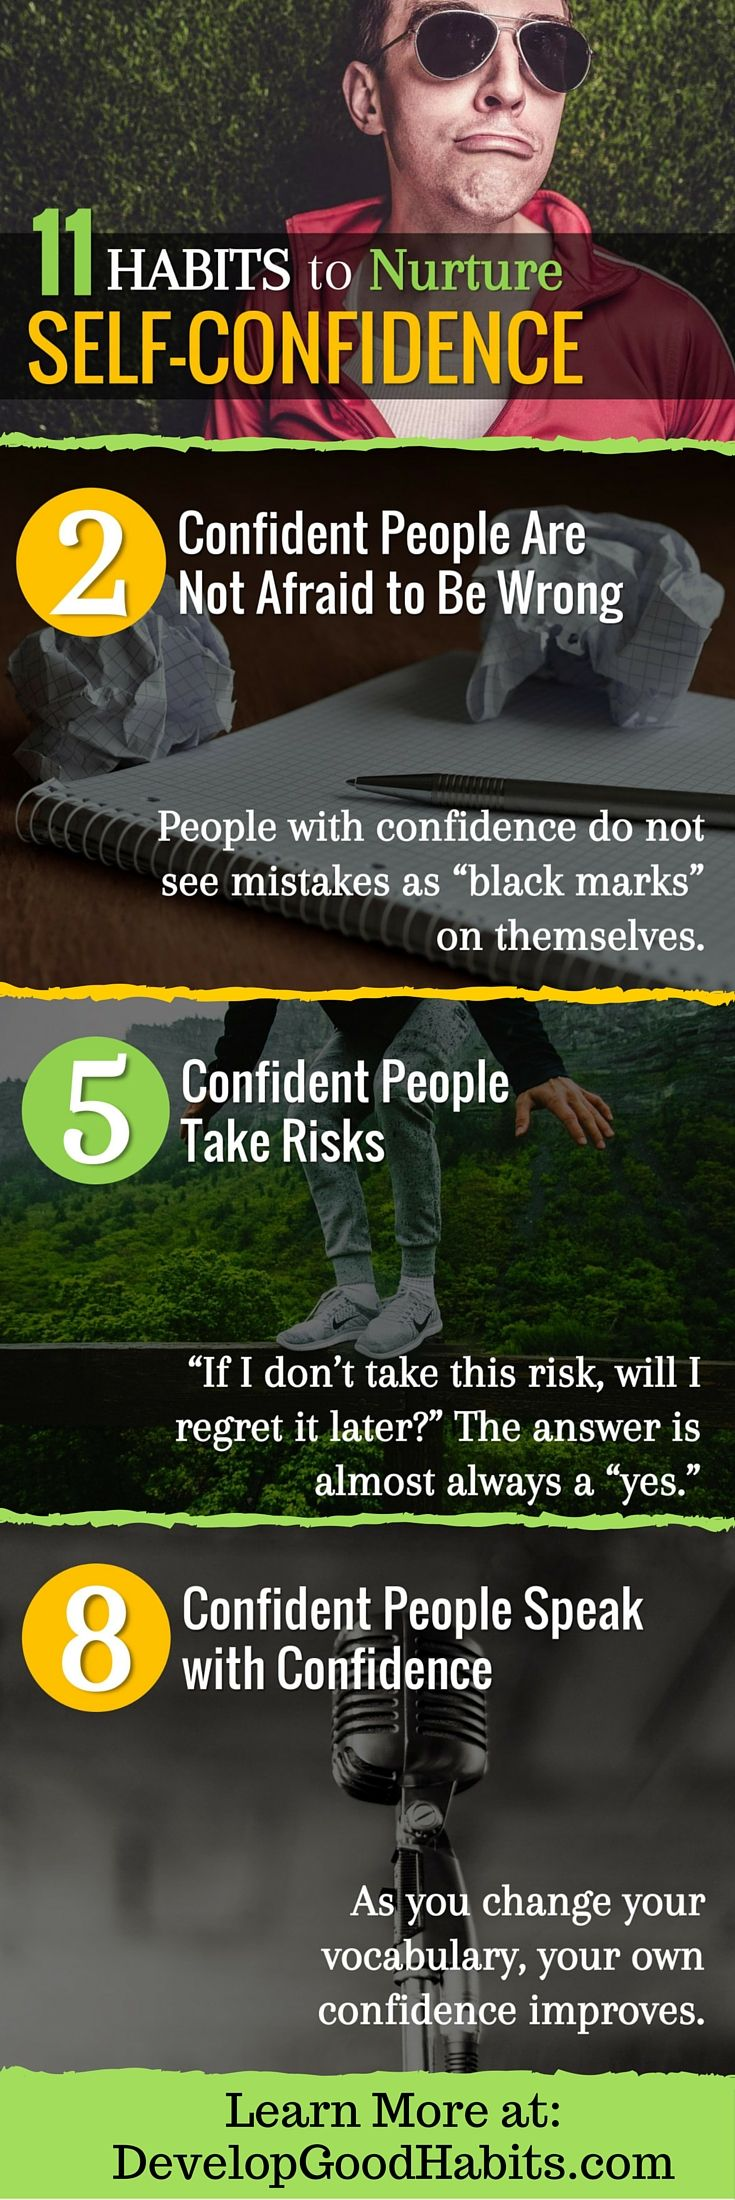 Self confidence tips. Building a little self confidnce is not as hard as it may appear. It is like building a house brick-by-brick. You simply need to work on the steps of self-assurance a little bit at a time and you will build your confidence. See the 11 methods self confident people understand and follow to keep their confidence strong.